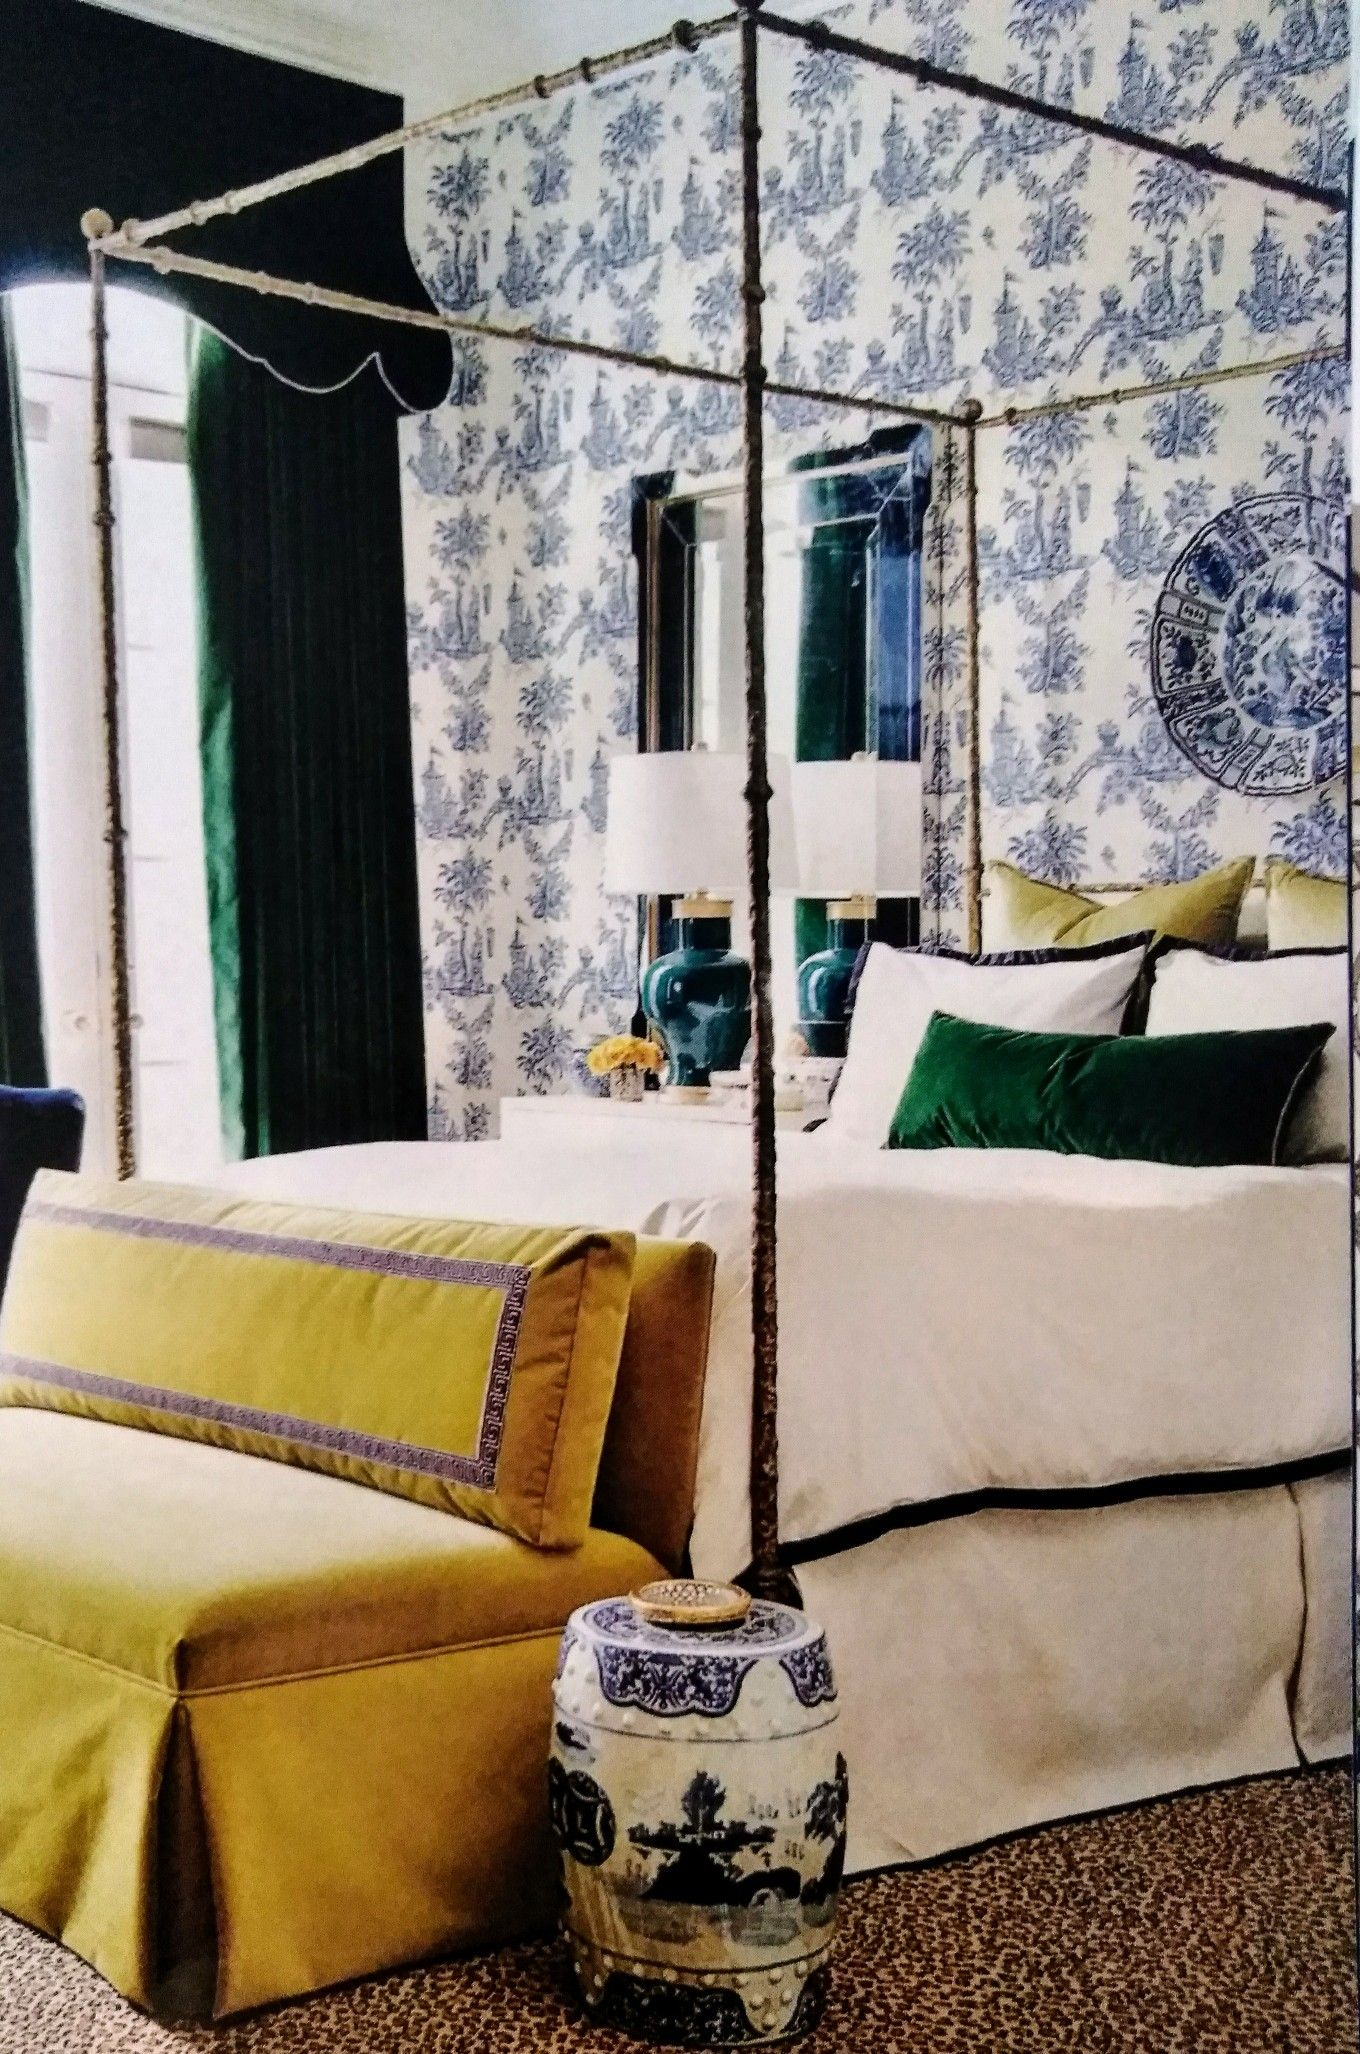 blue toilet green velvet curtains yellow settee traditional home april 2016